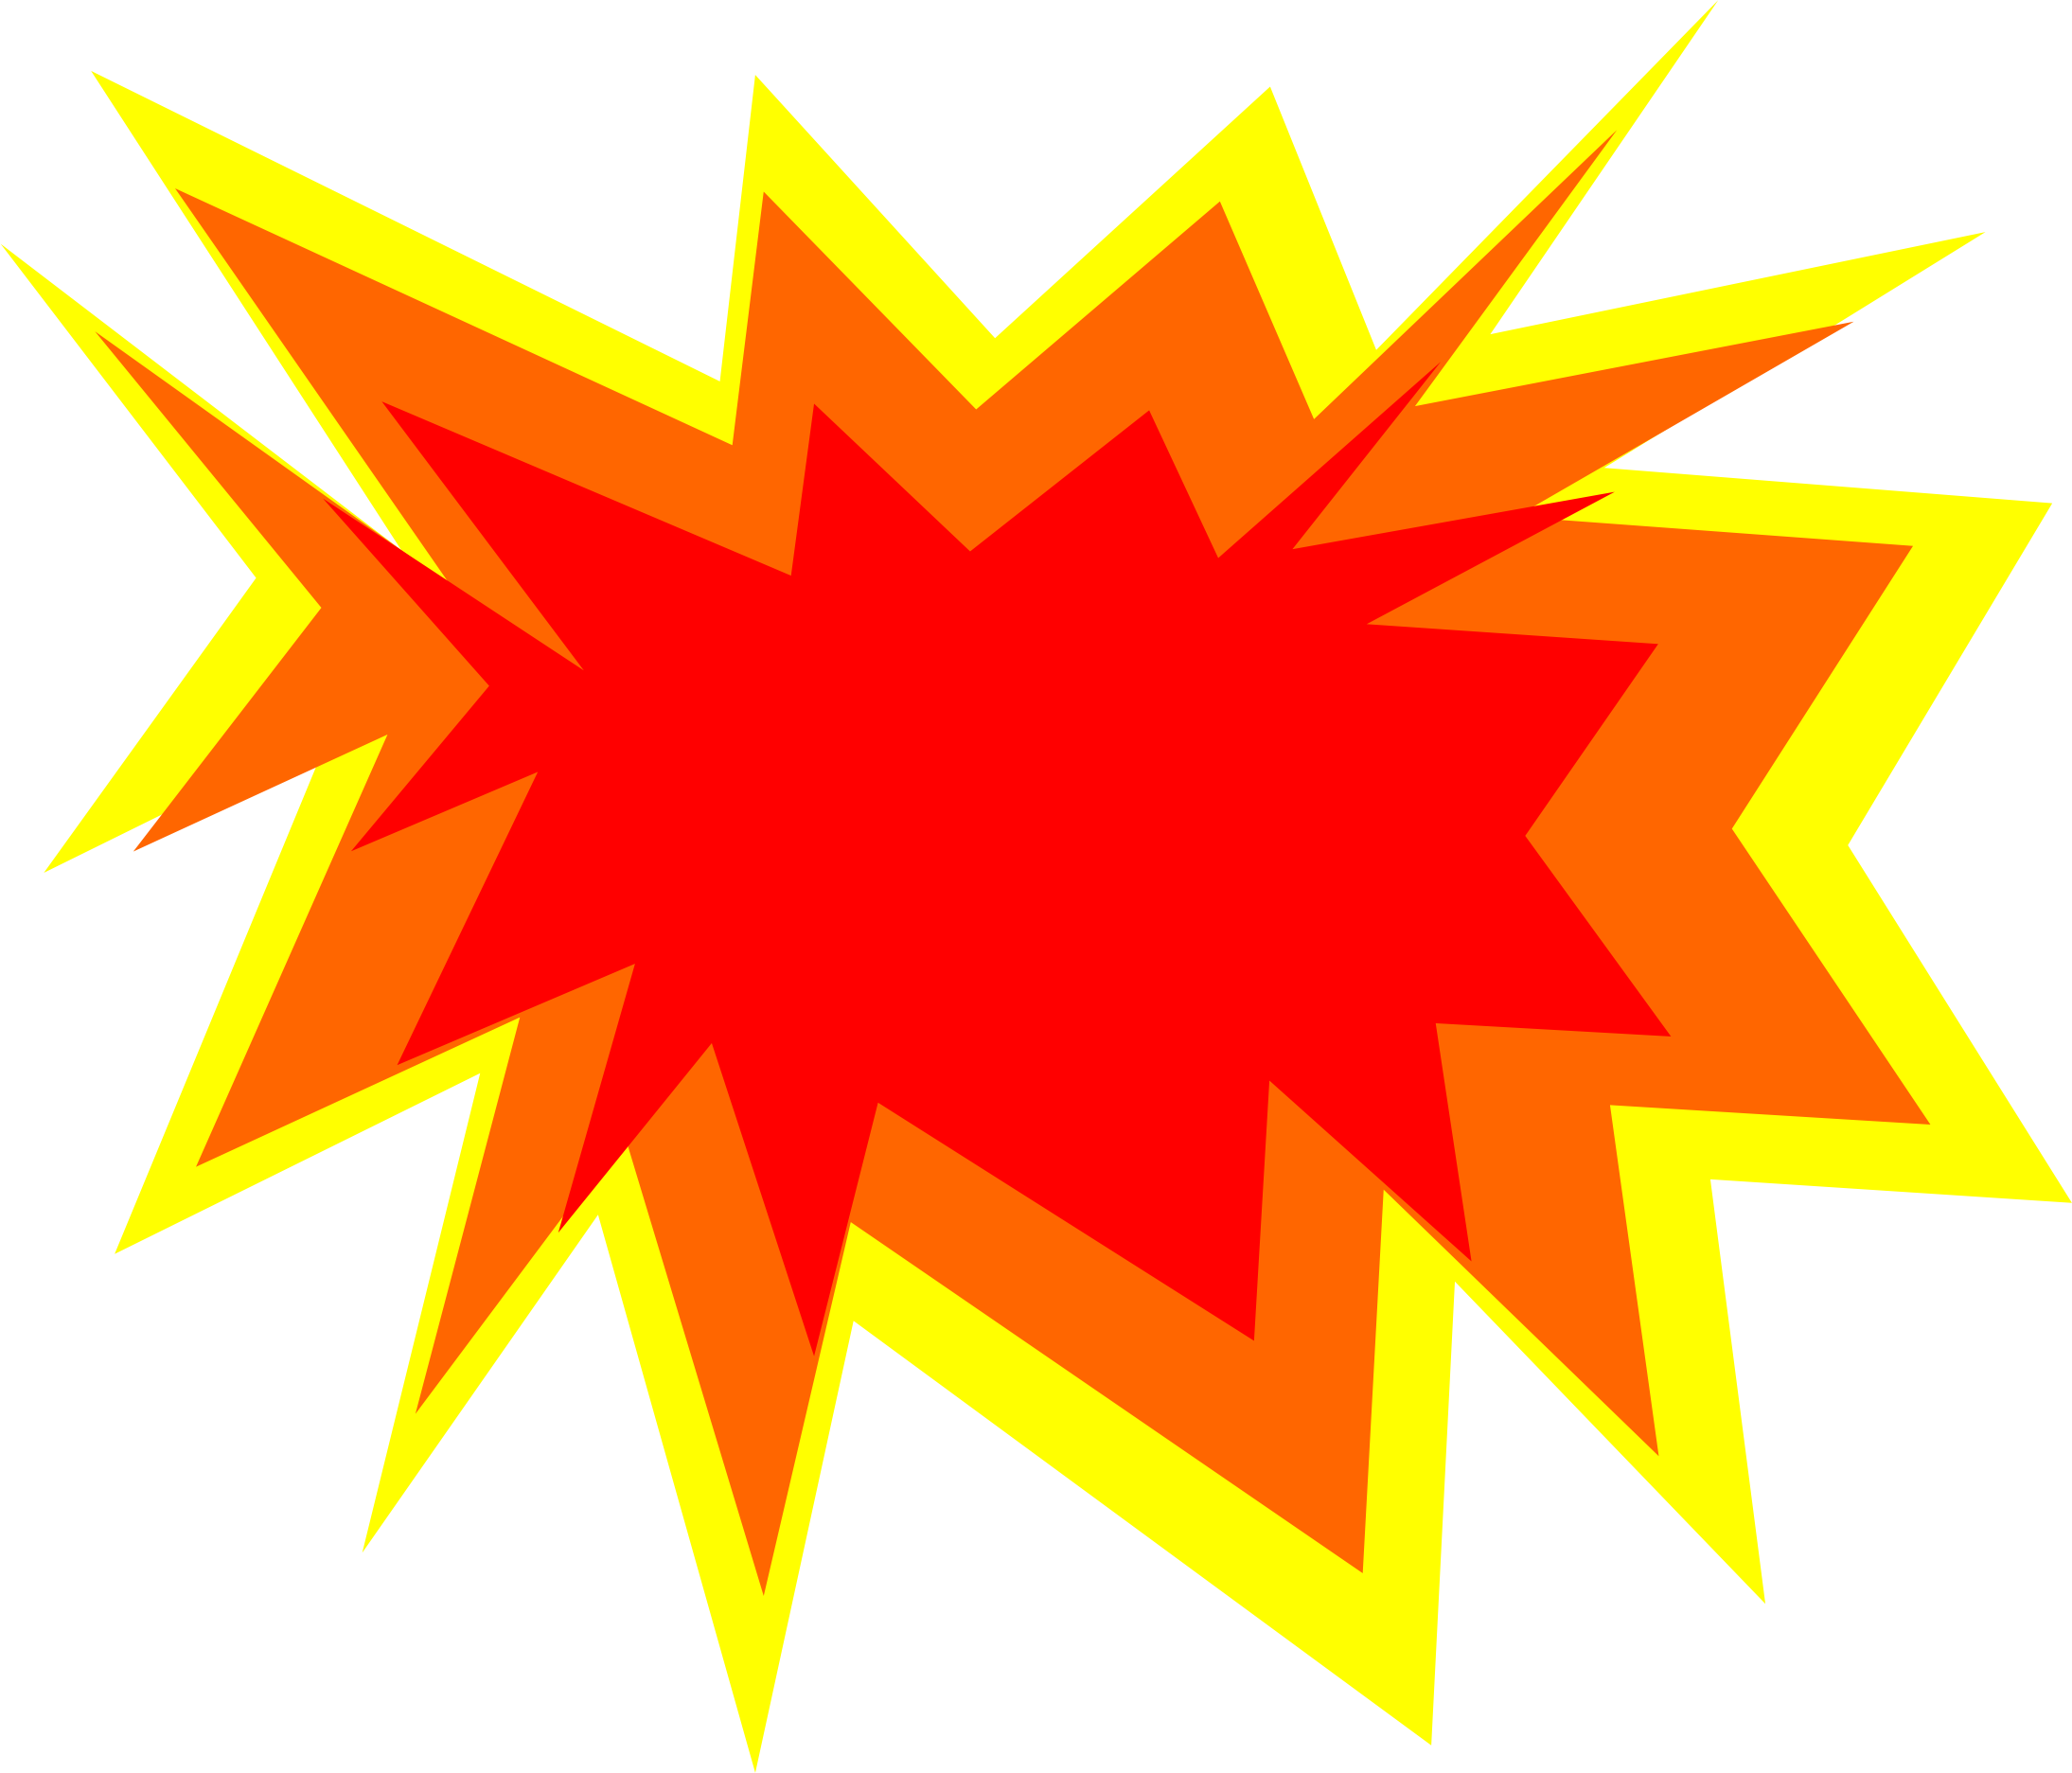 Exploding star clipart. Explosion free for download